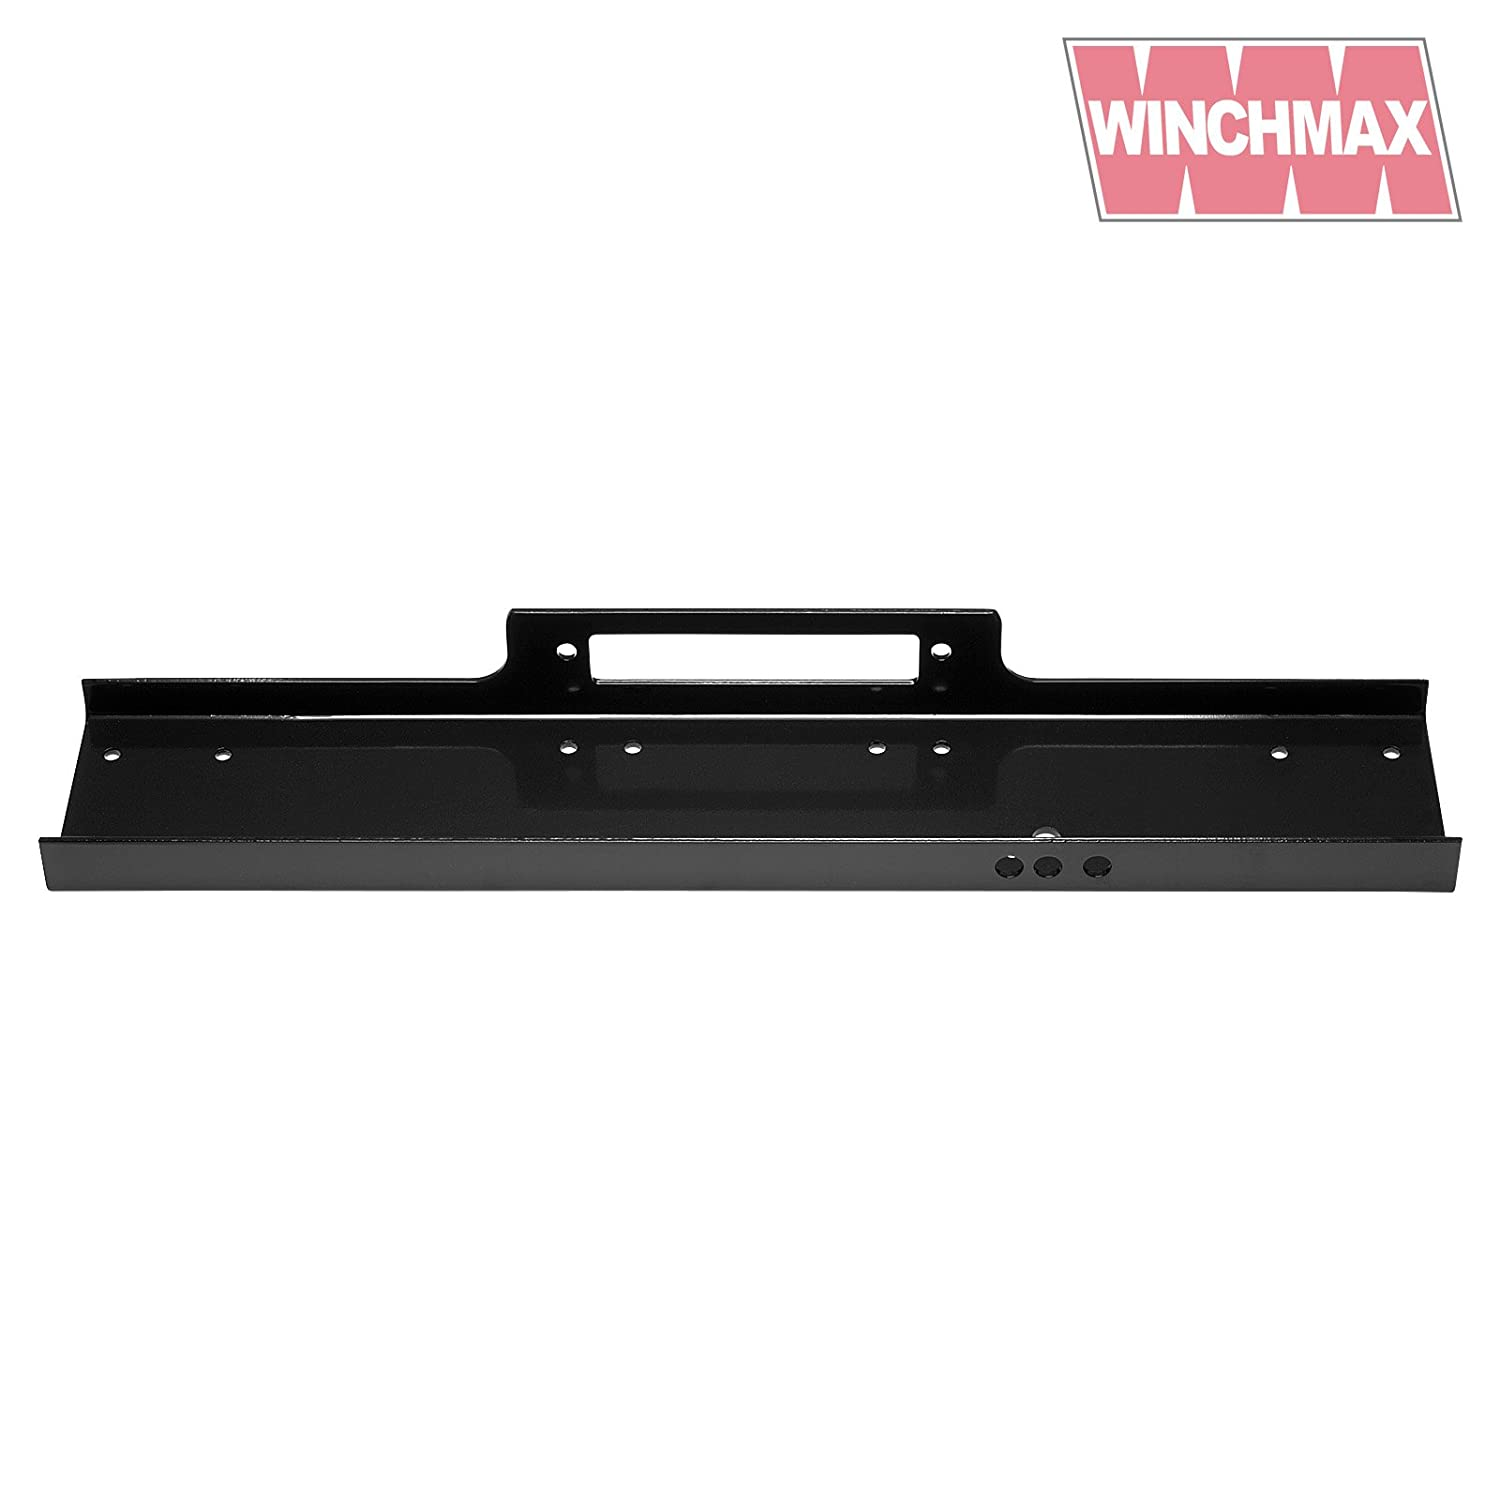 WINCH MOUNTING PLATE FOR 13000LB + 13500LB WINCHMAX WINCHES